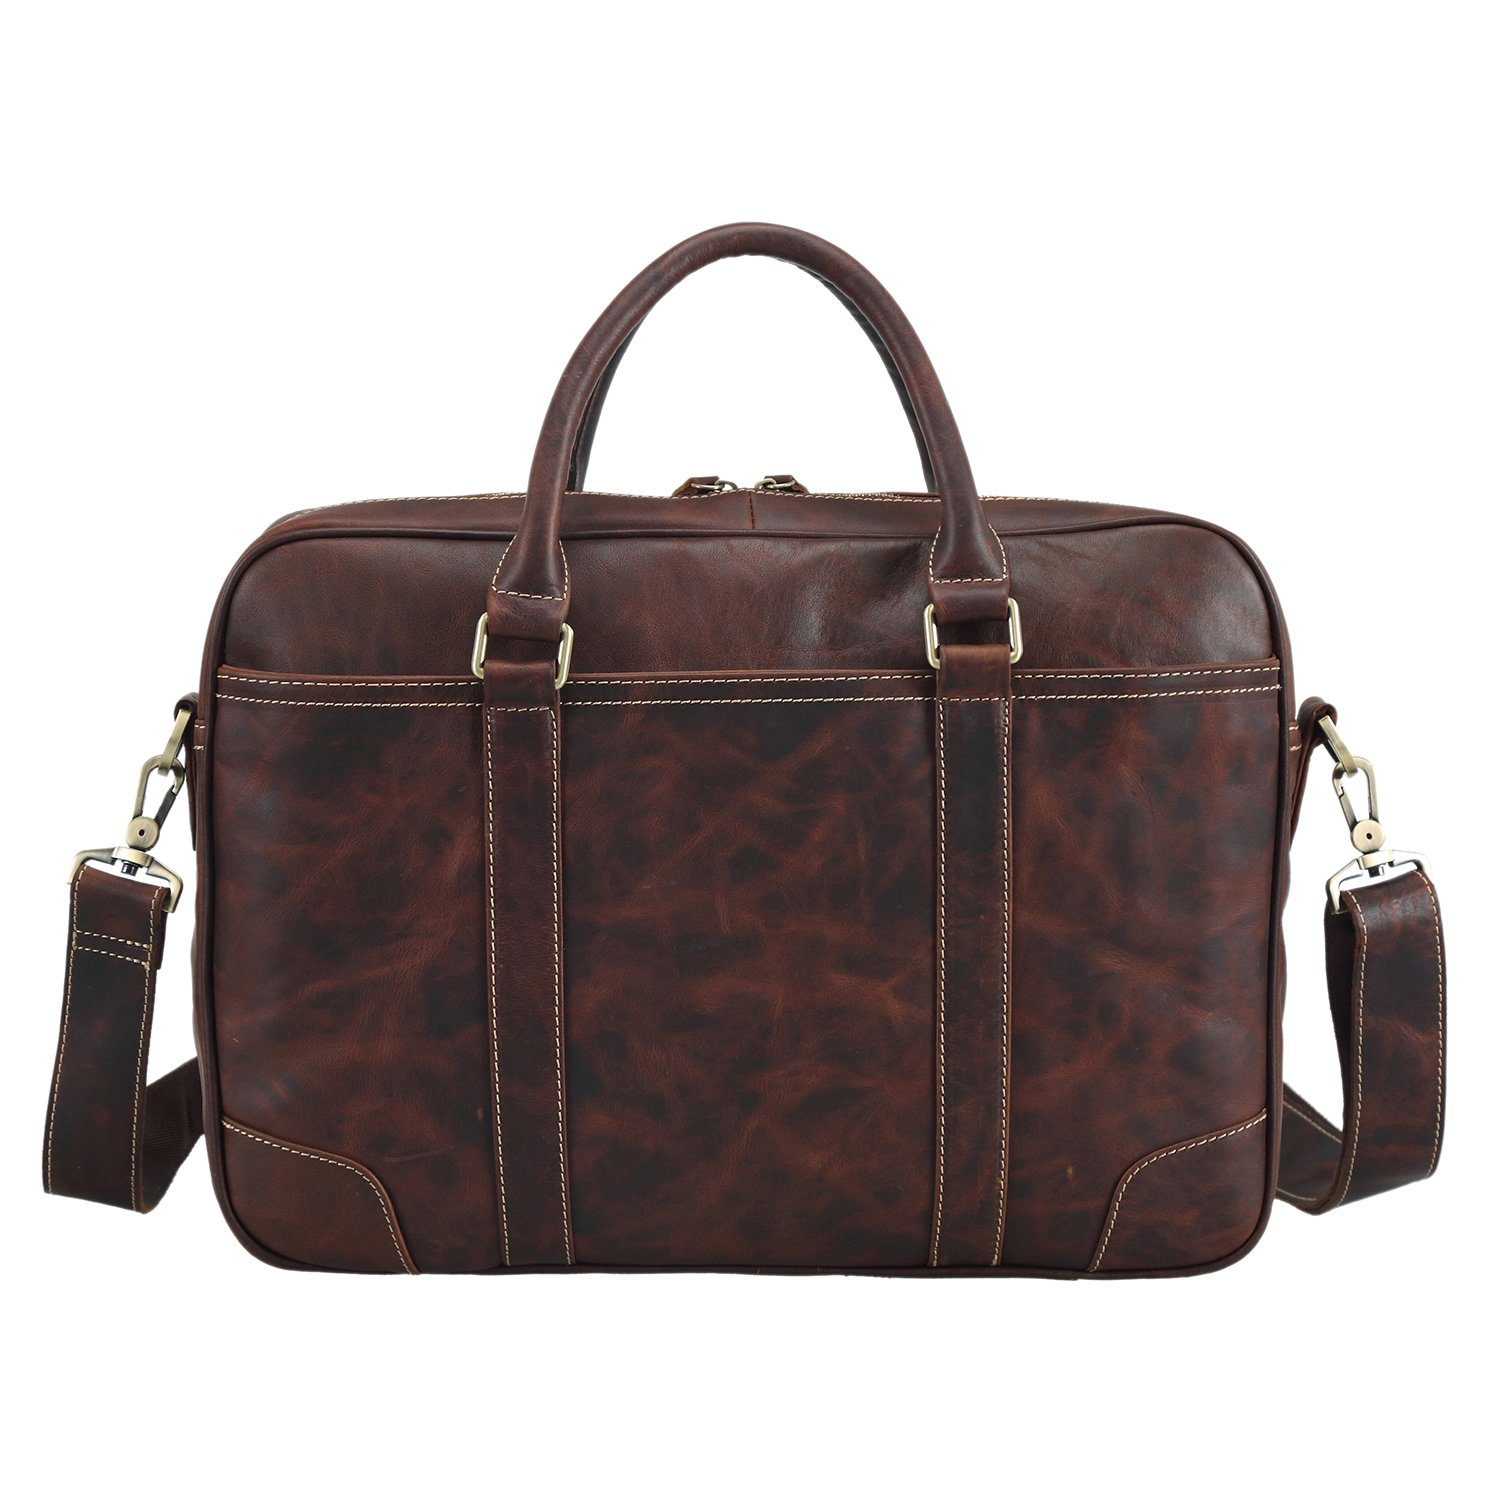 Texbo Genuine Top Cow Leather Business Briefcase Fit 15.6'' Laptop Bag Tote (Dark coffee)